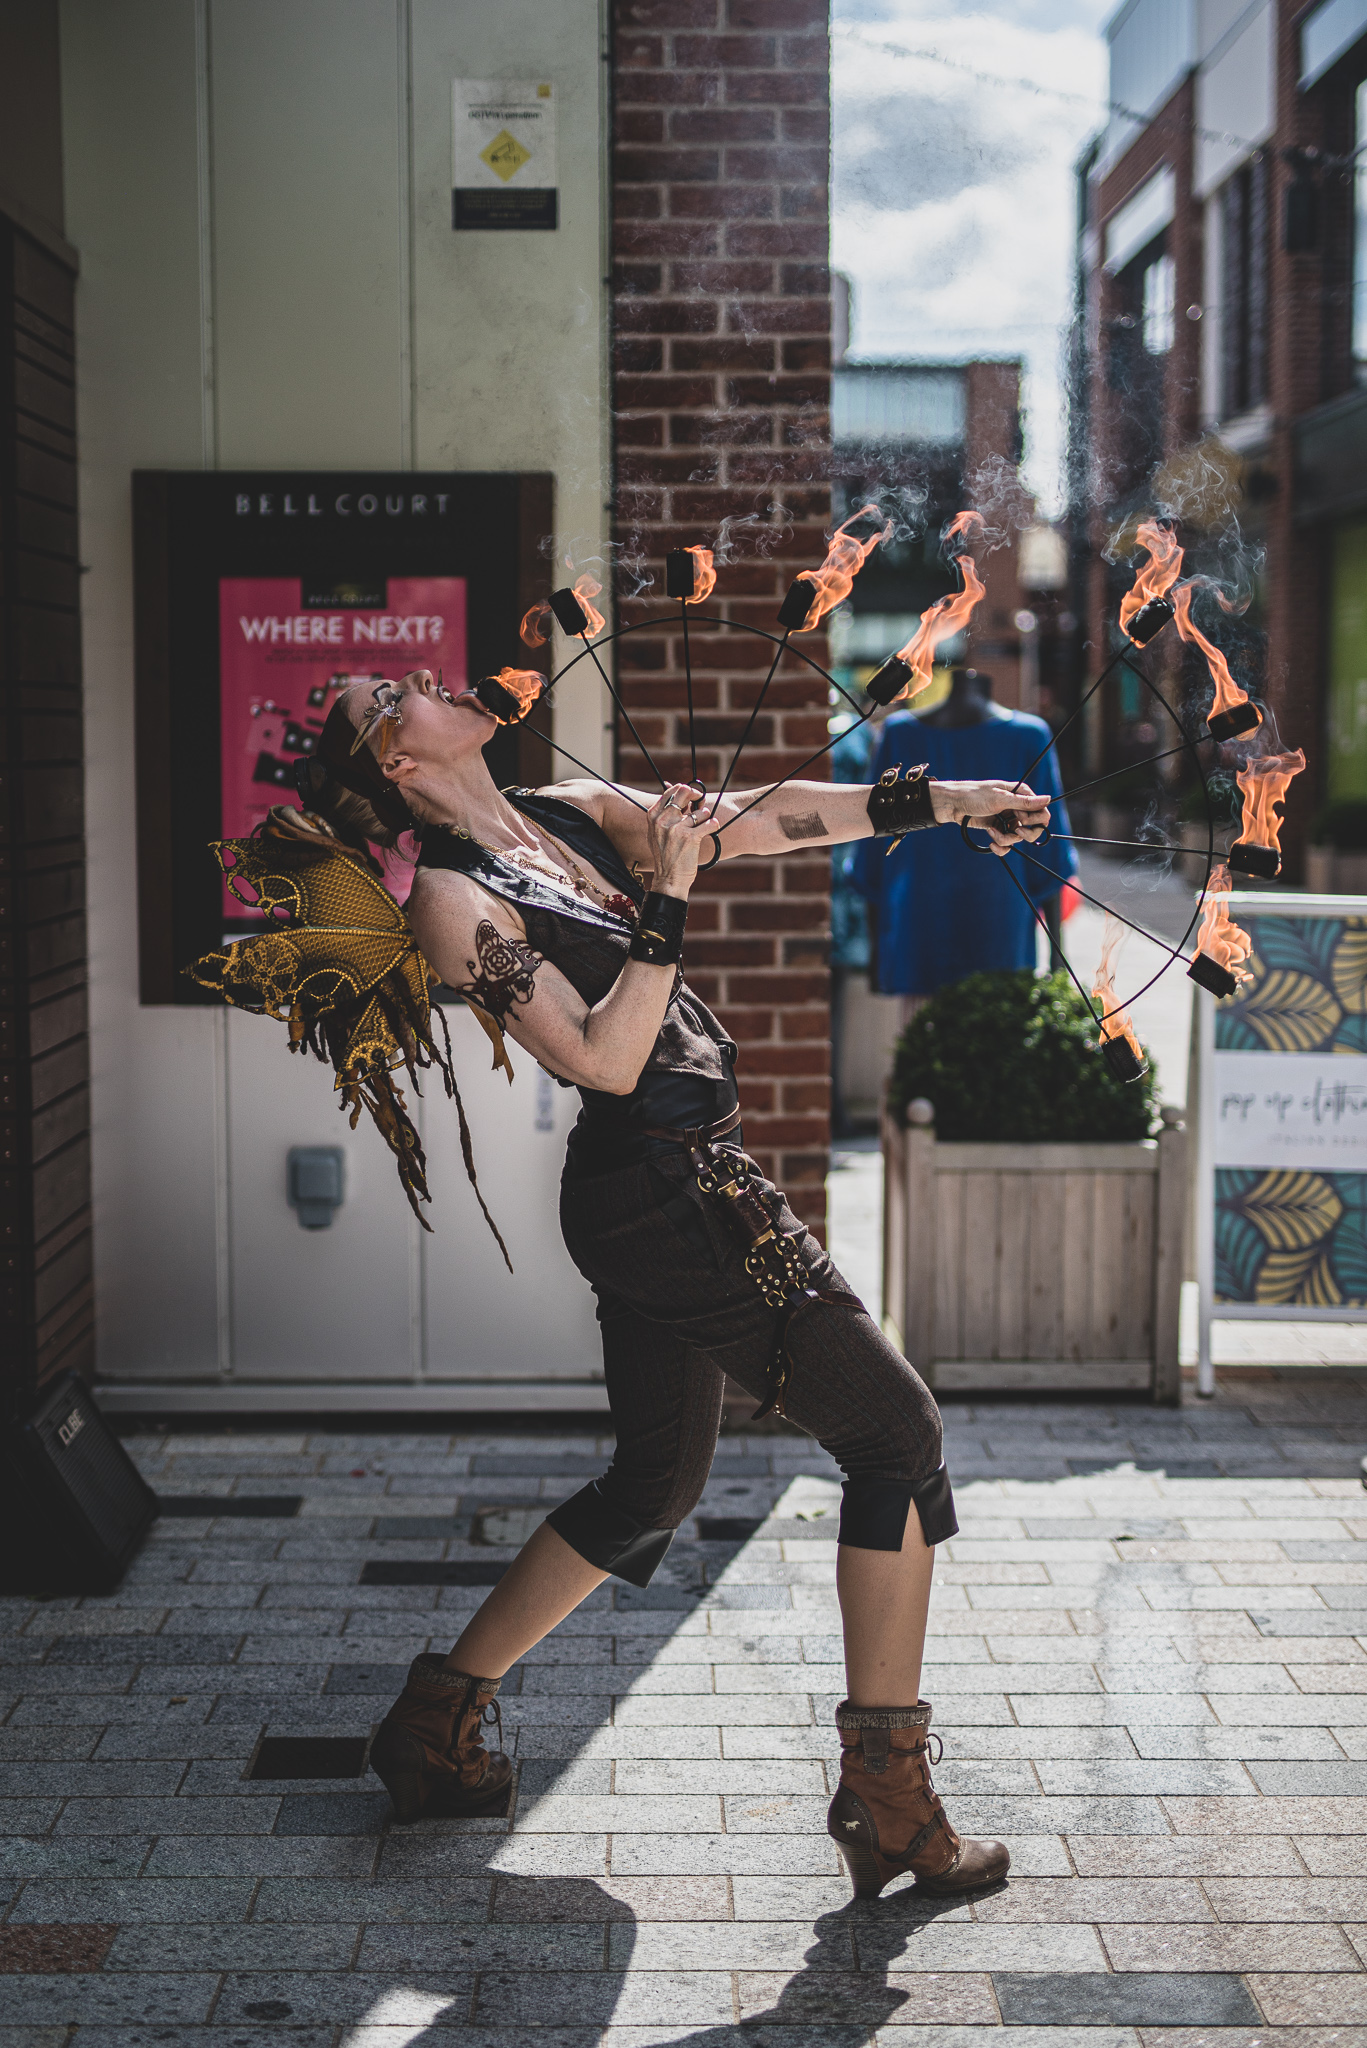 Woman juggling outside